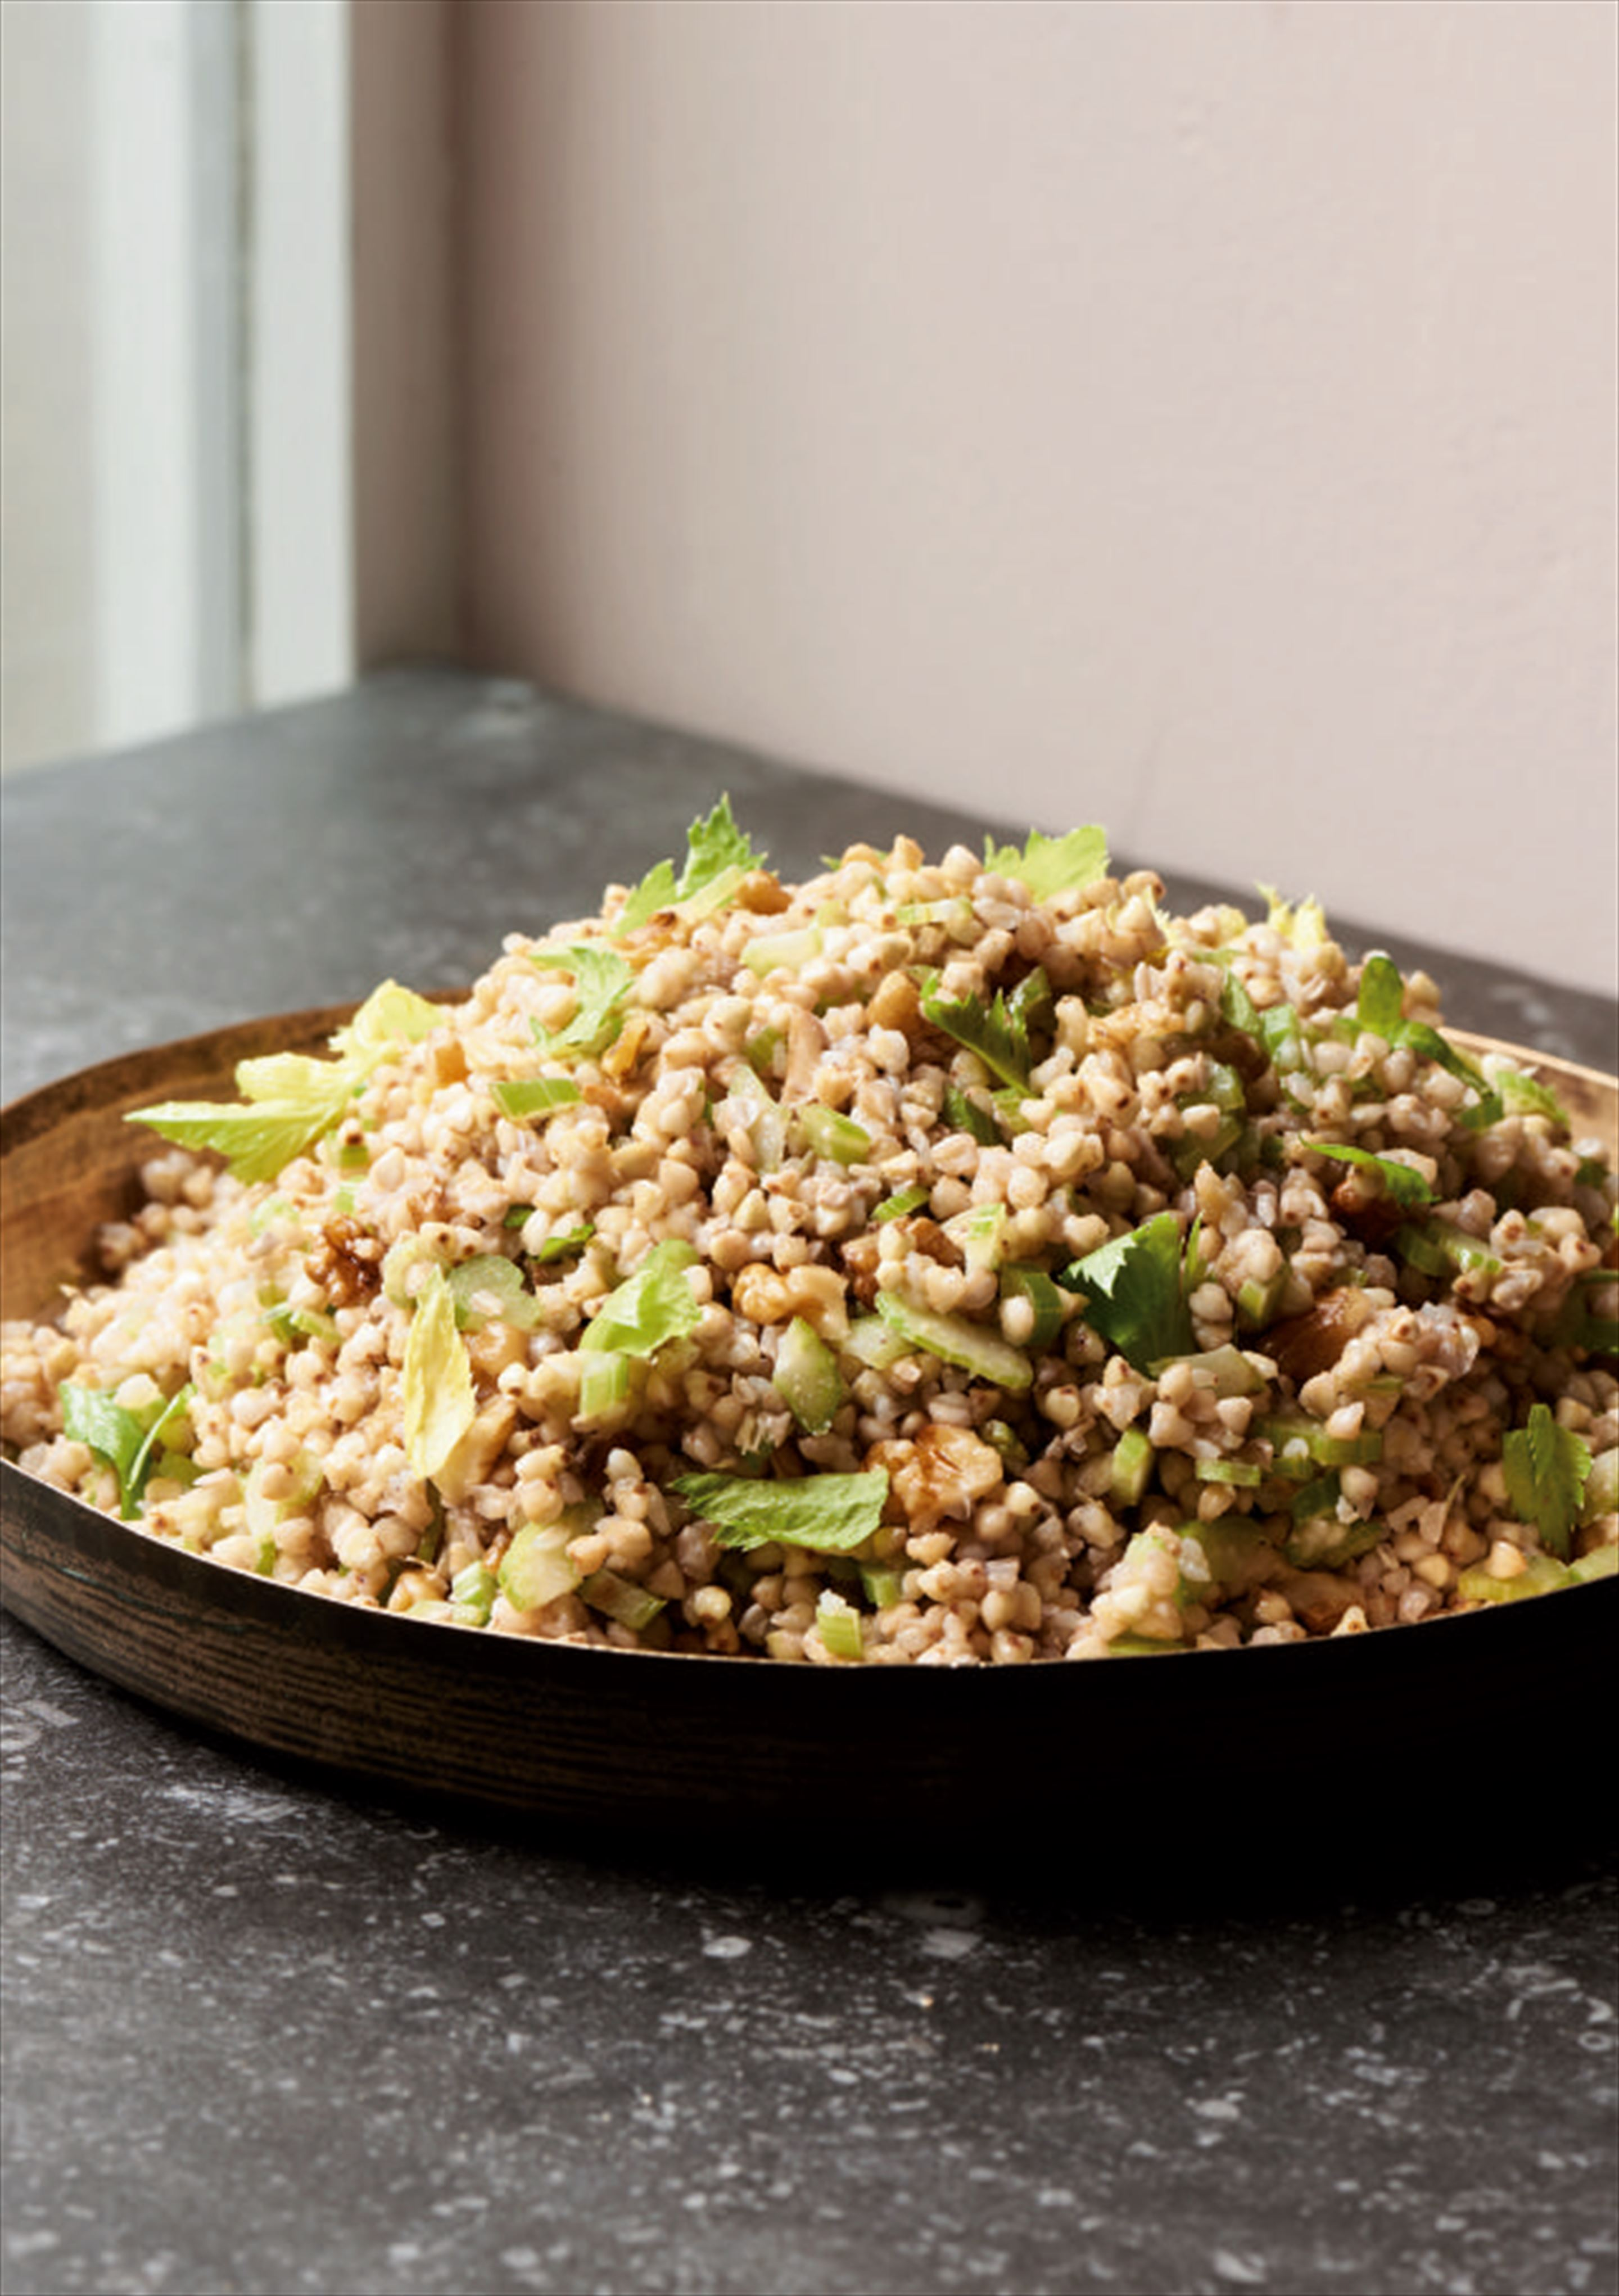 Buckwheat with celery and walnuts